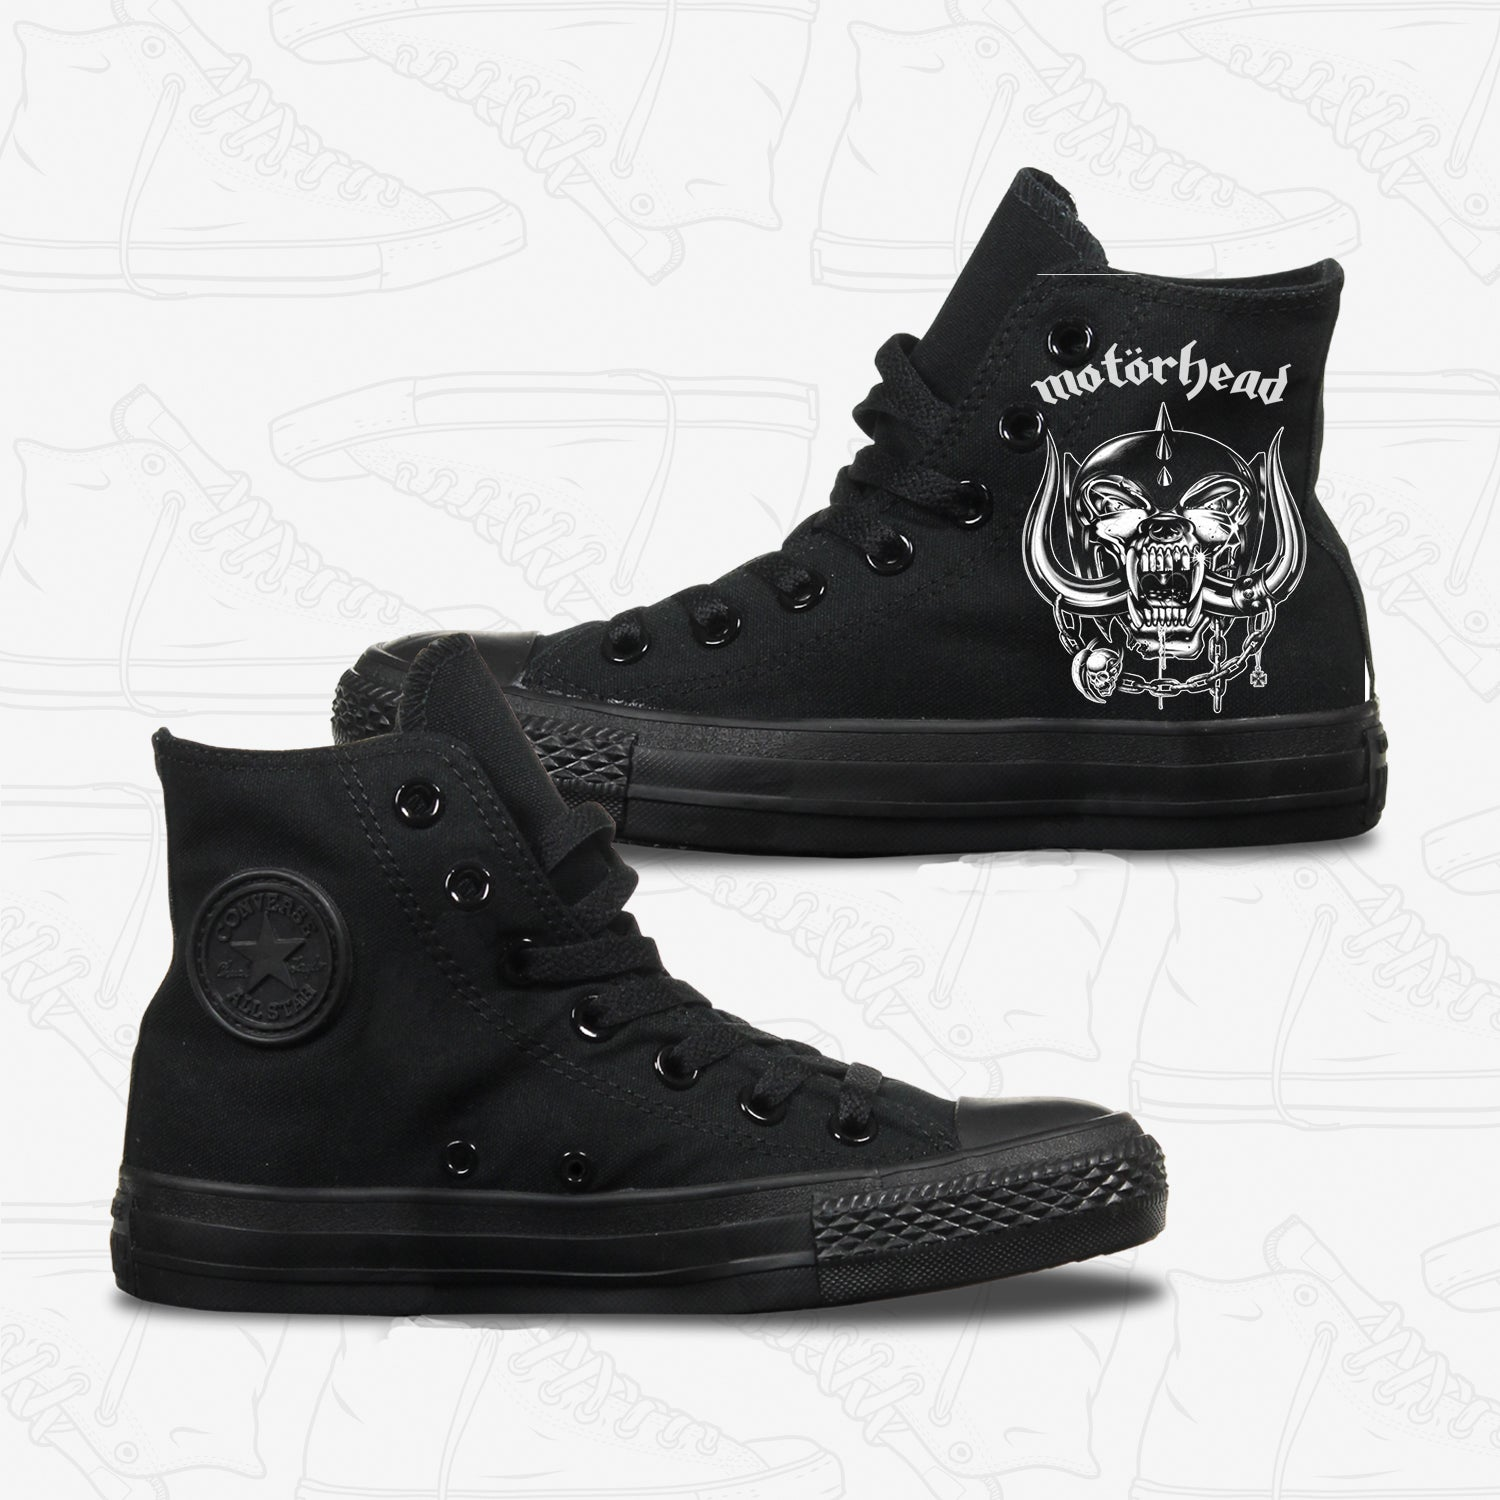 Motorhead Adult Converse Shoes